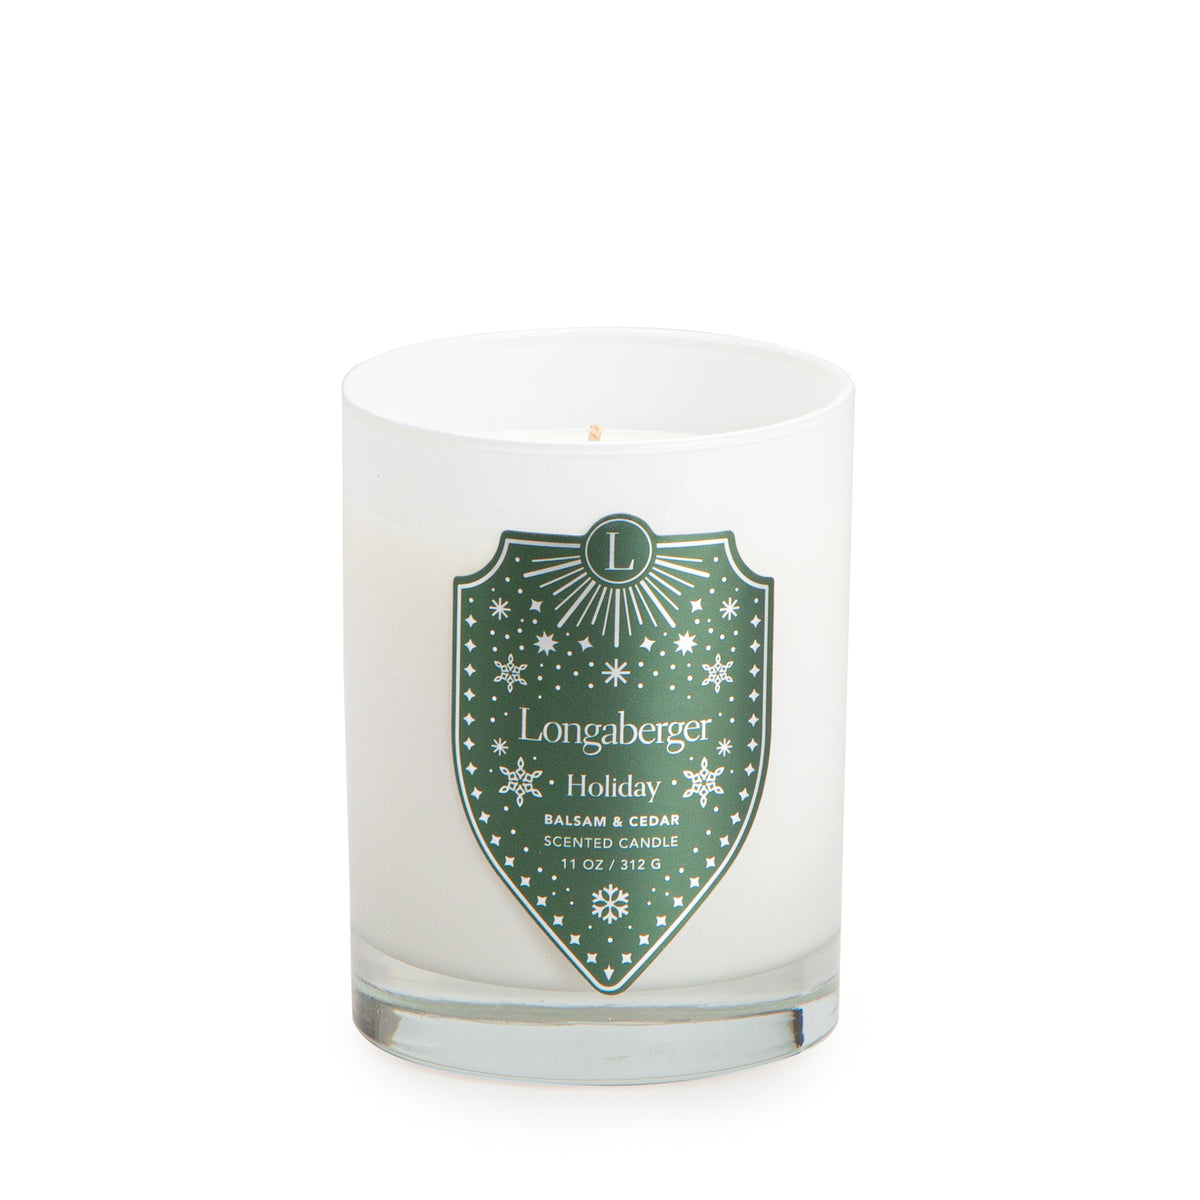 Balsam & Cedar Holiday Candle